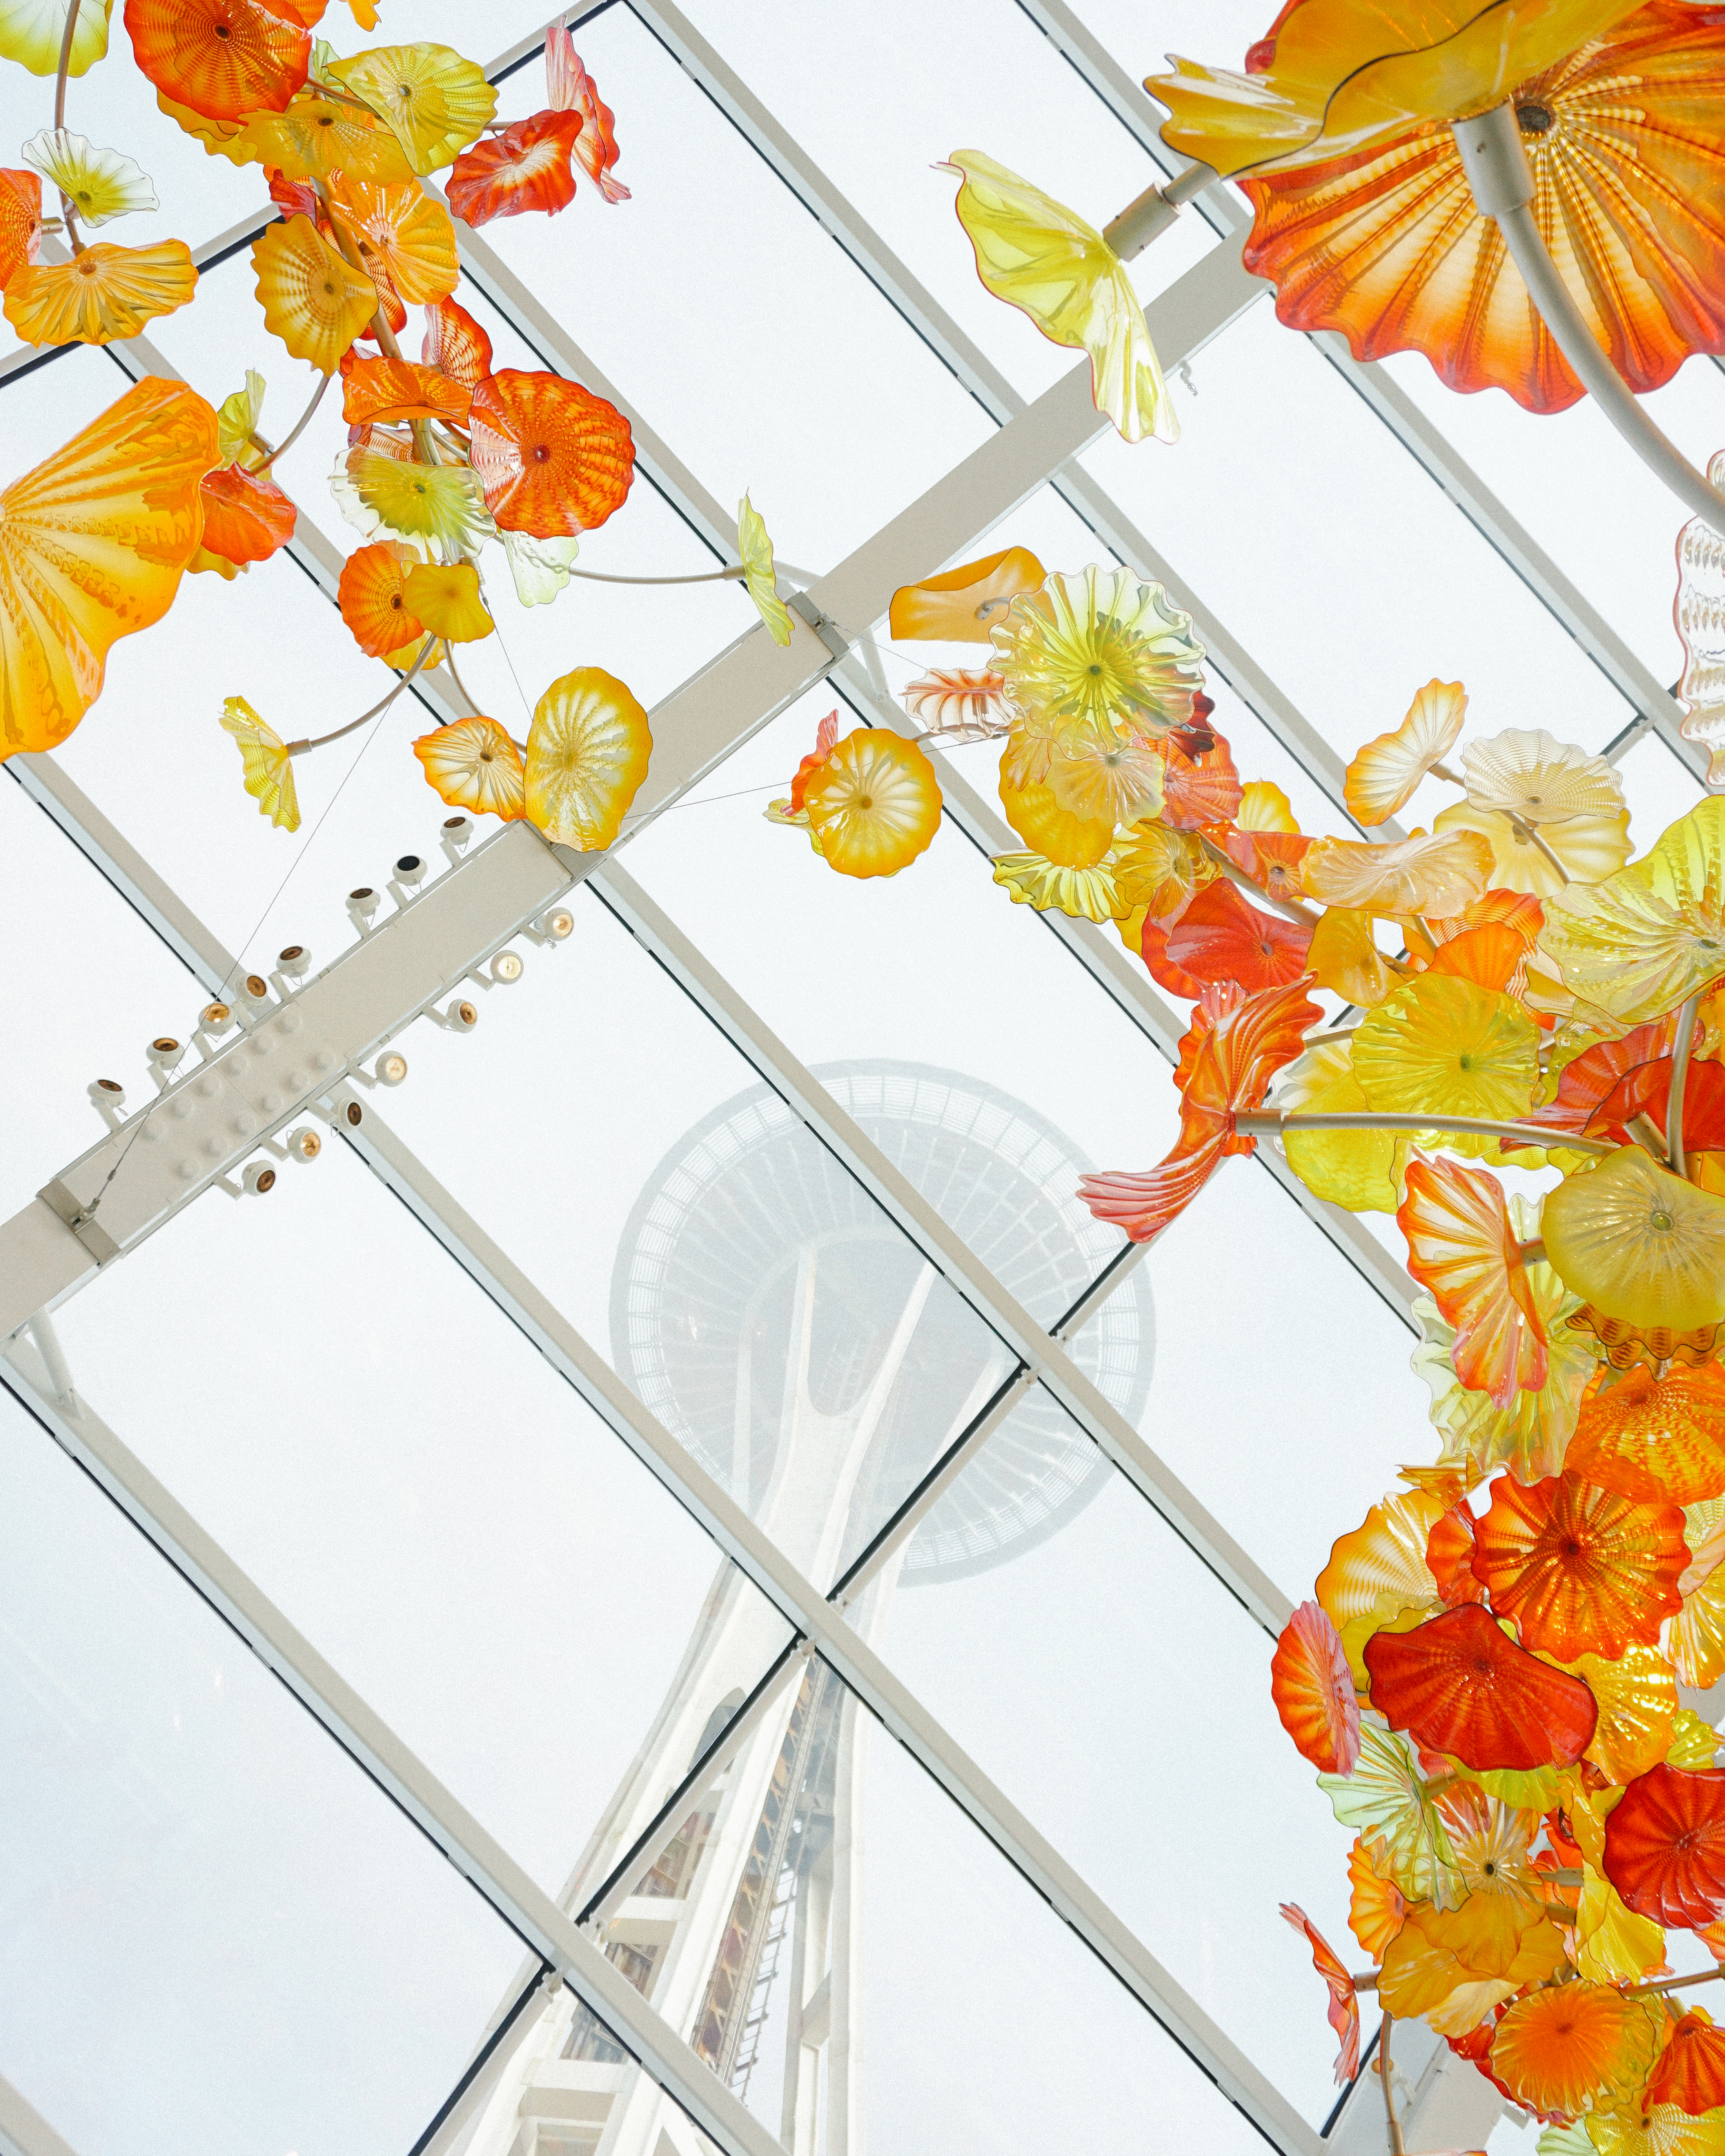 Space Needle from Chihuly.